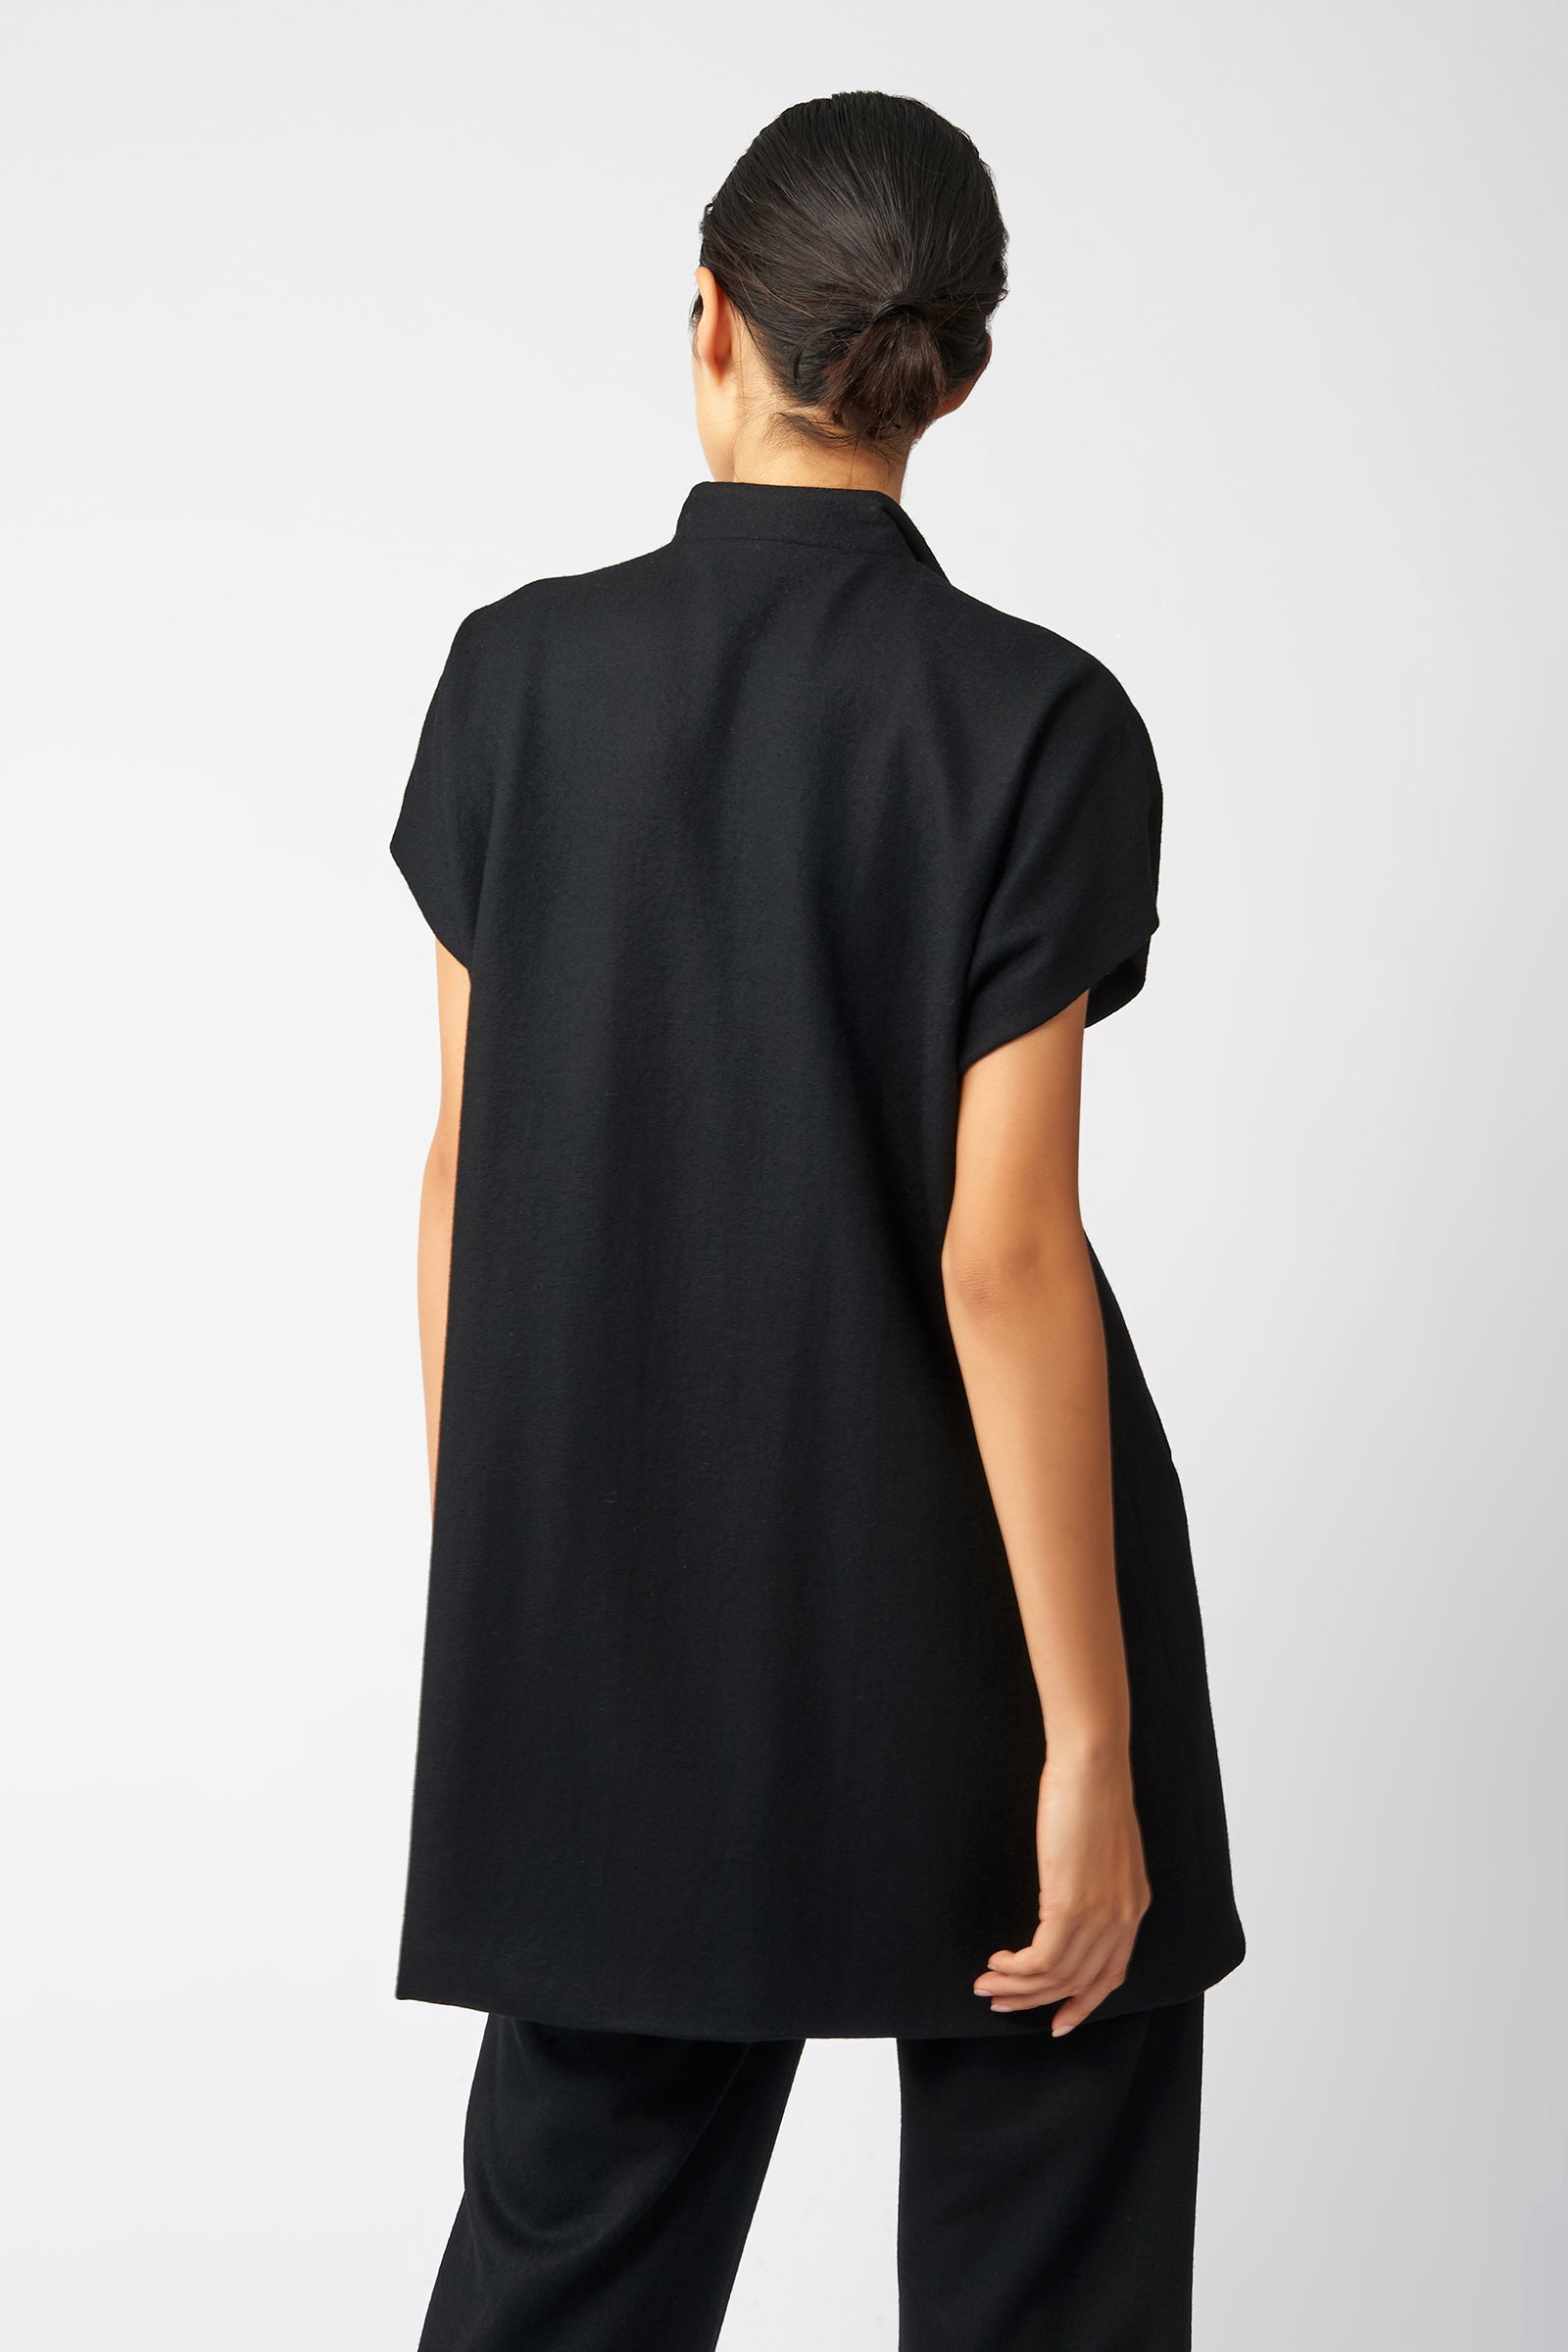 Kal Rieman Cap Sleeve Zip Jacket in Black on Model Back View